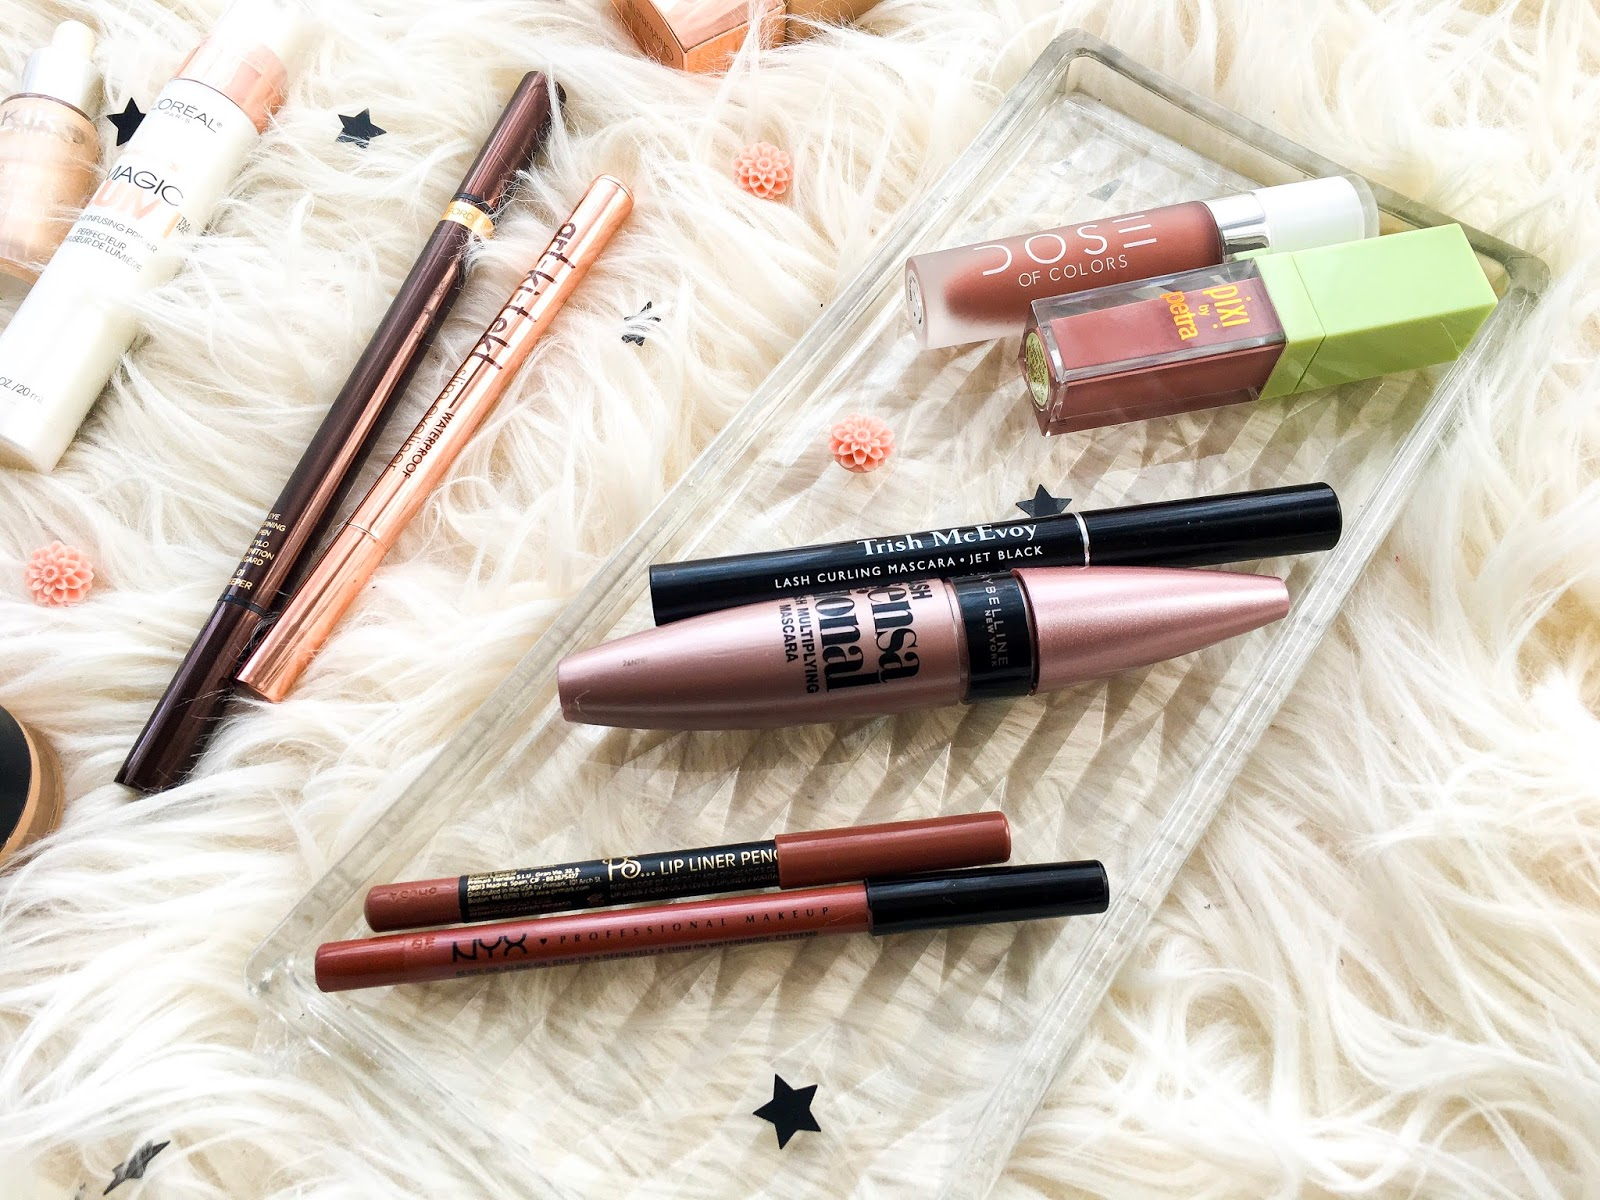 la splash artkitekt eyeliner vs tom ford eye defining pen, nyx intimidate lip liner vs primark toffee lip liner, maybelline lash sensational, trish mcevoy lash curling mascara, pixi mattelast liquid lipstick matte beige vs dose of colors truffle